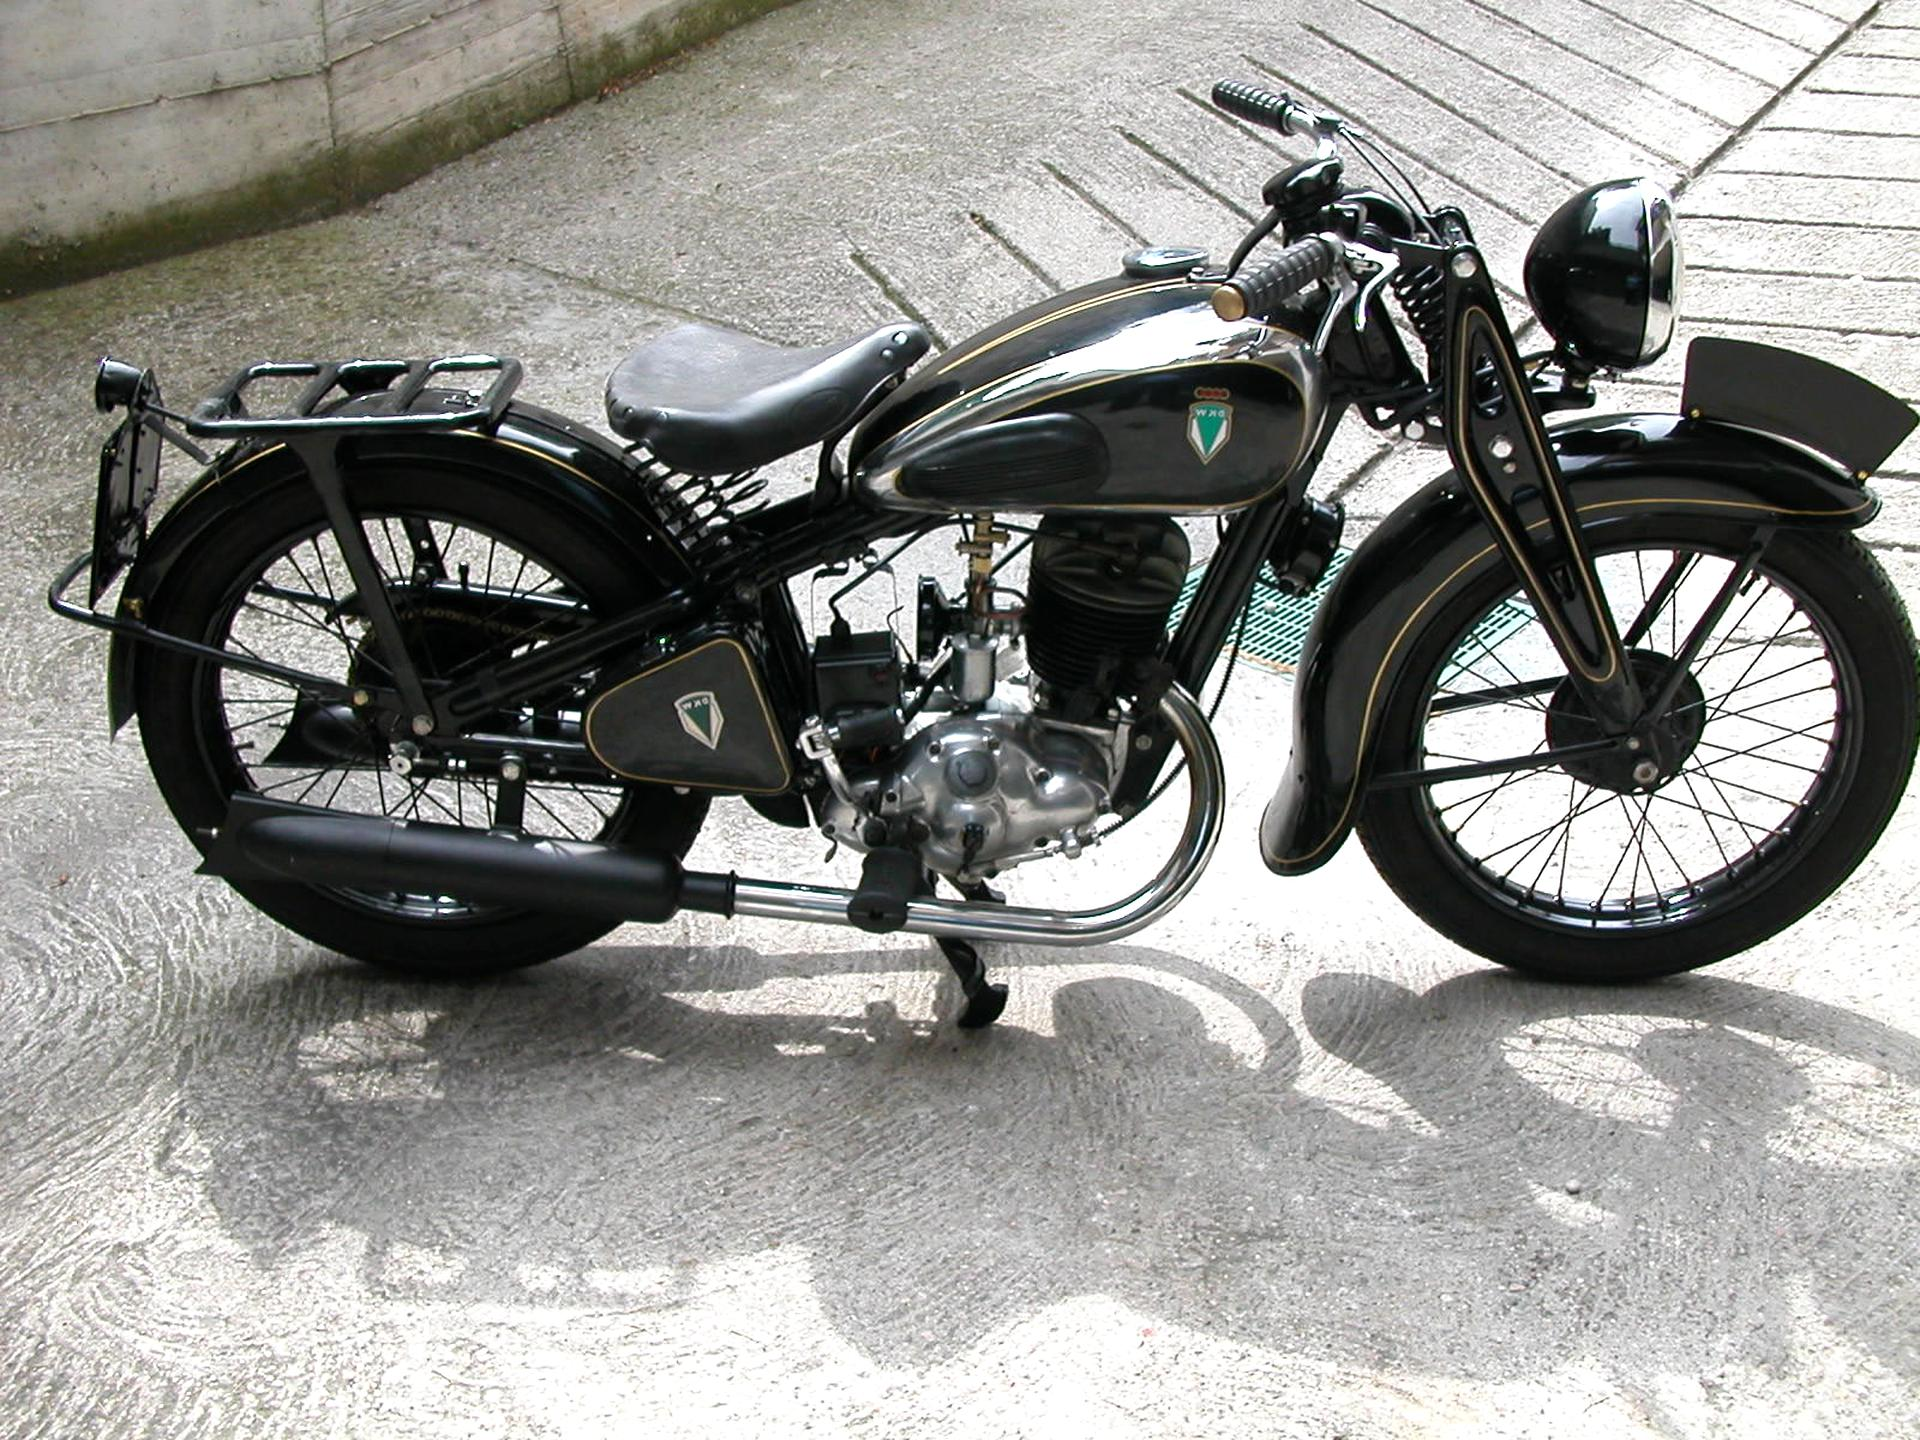 Dkw Motorcycle For Sale Only 2 Left At 75